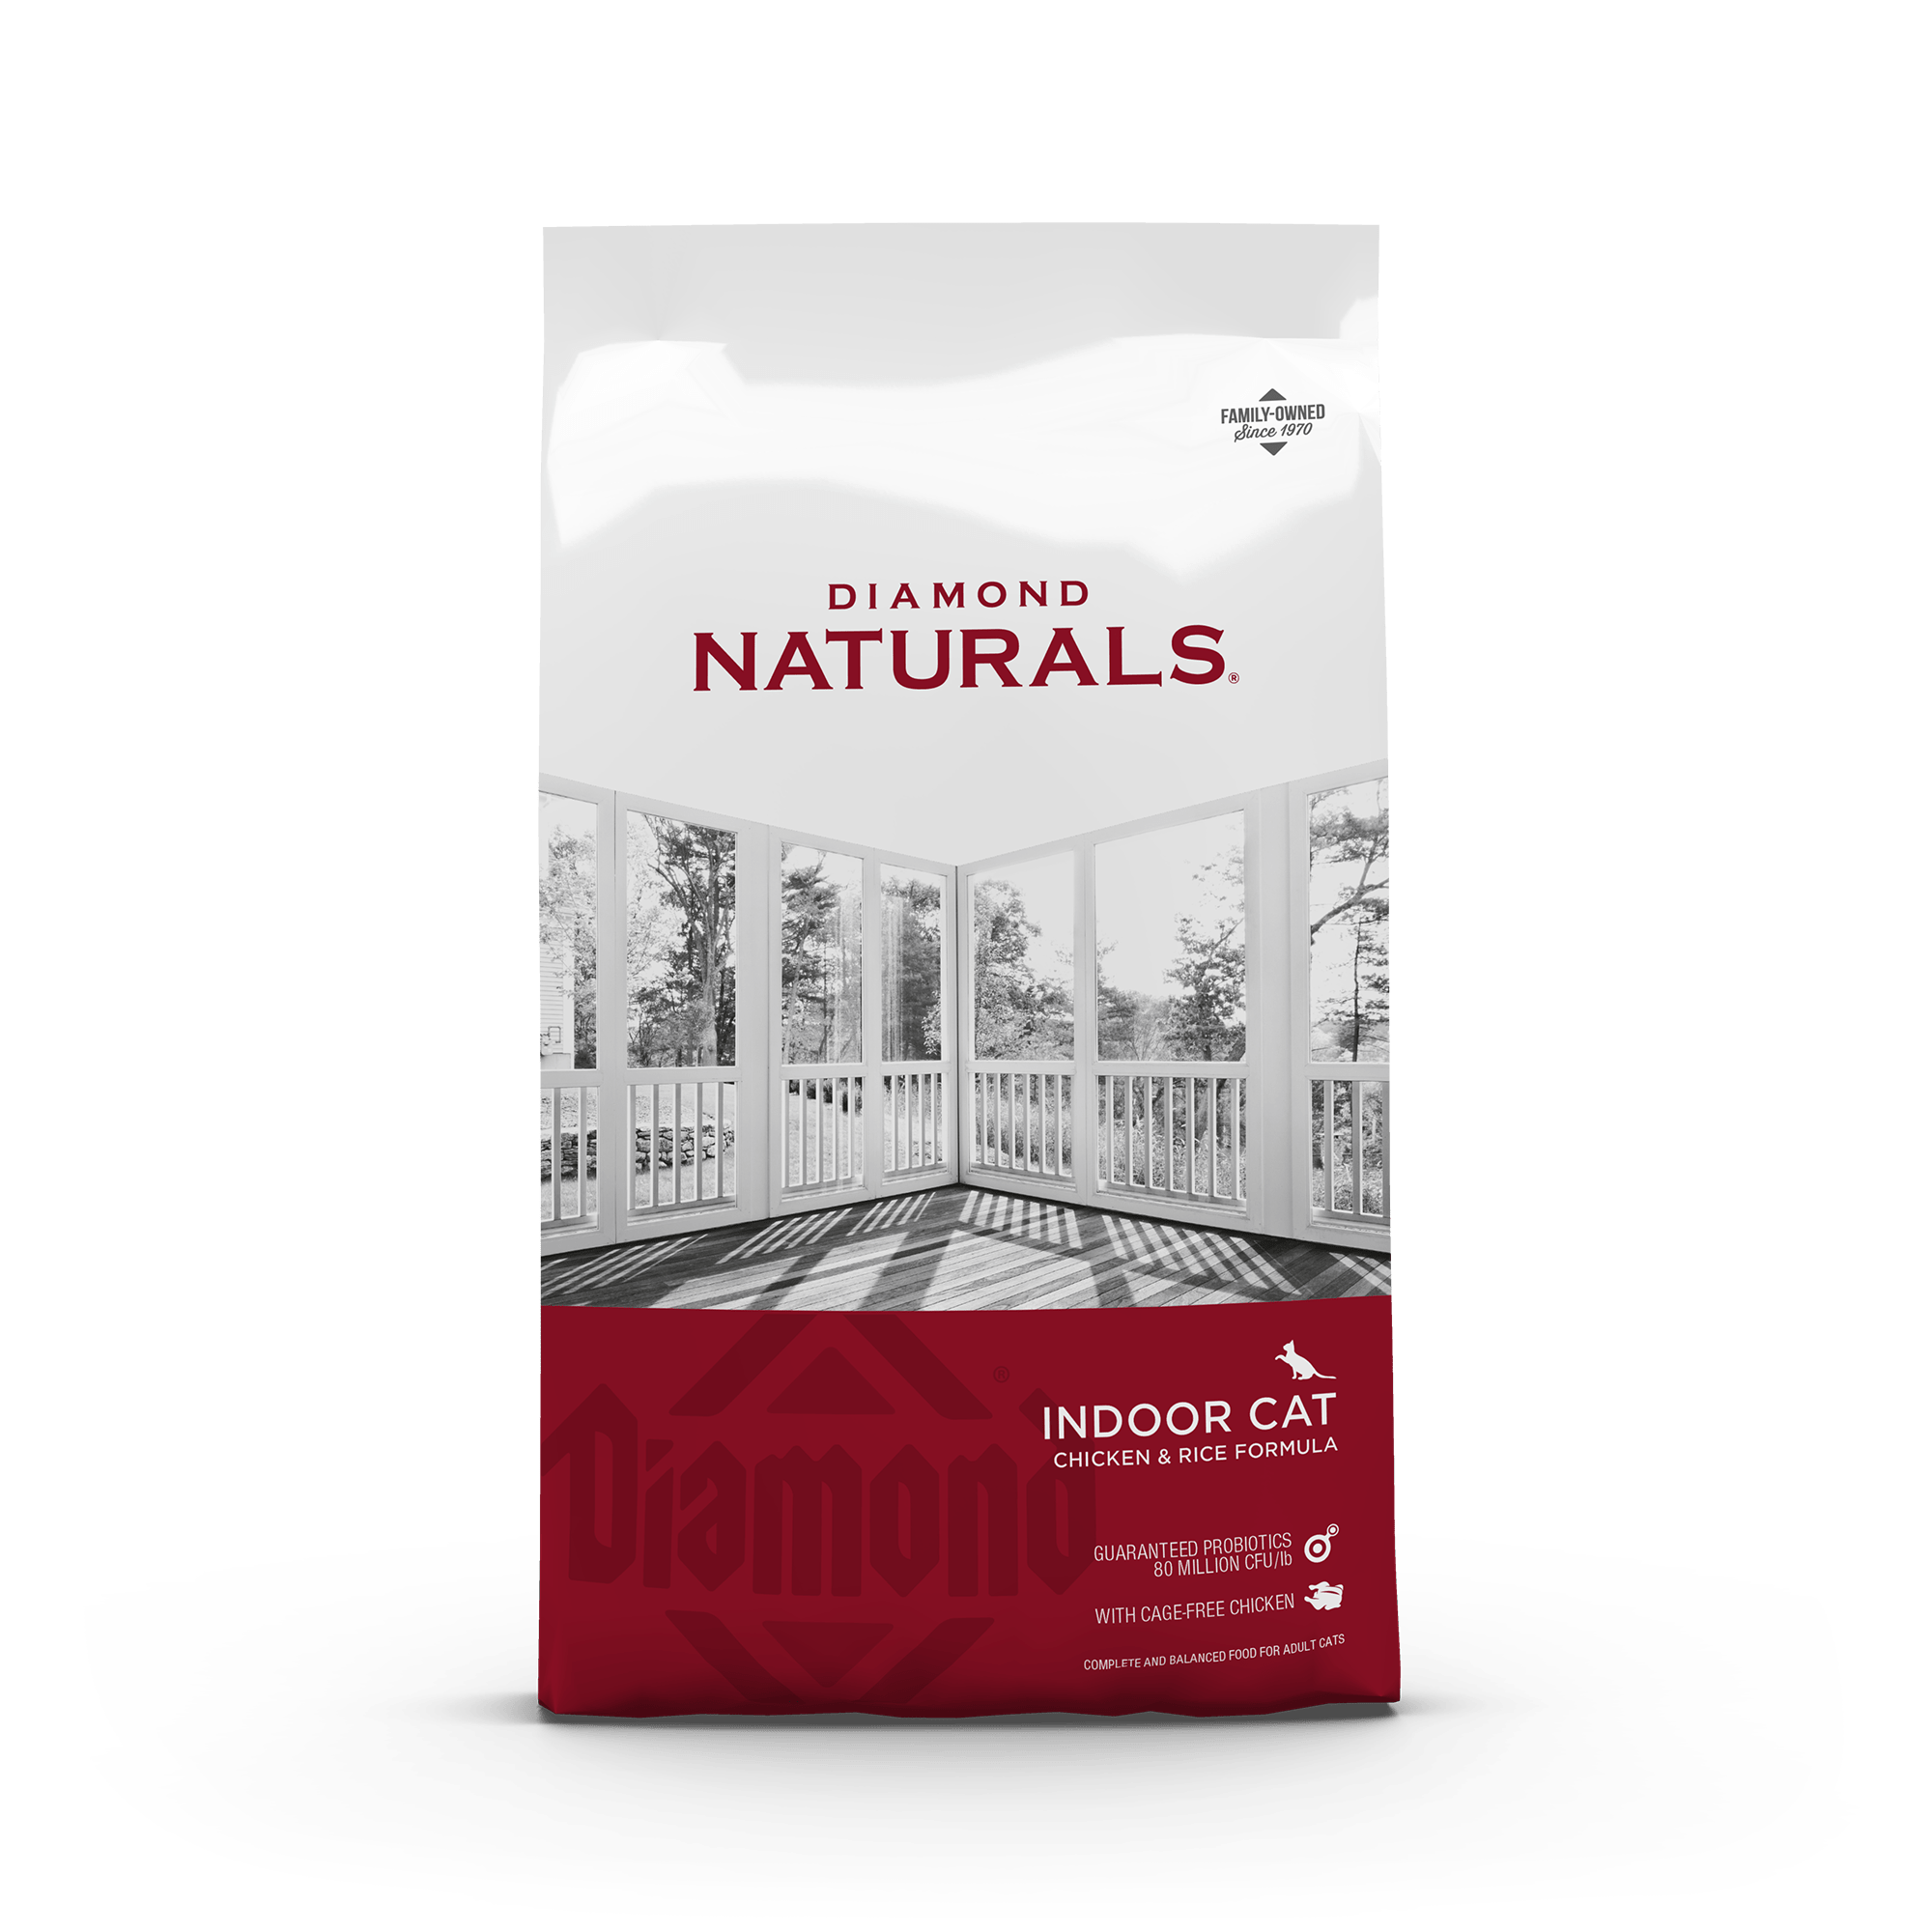 Diamond Naturals Indoor Cat Chicken & Rice Formula | Diamond Pet Foods